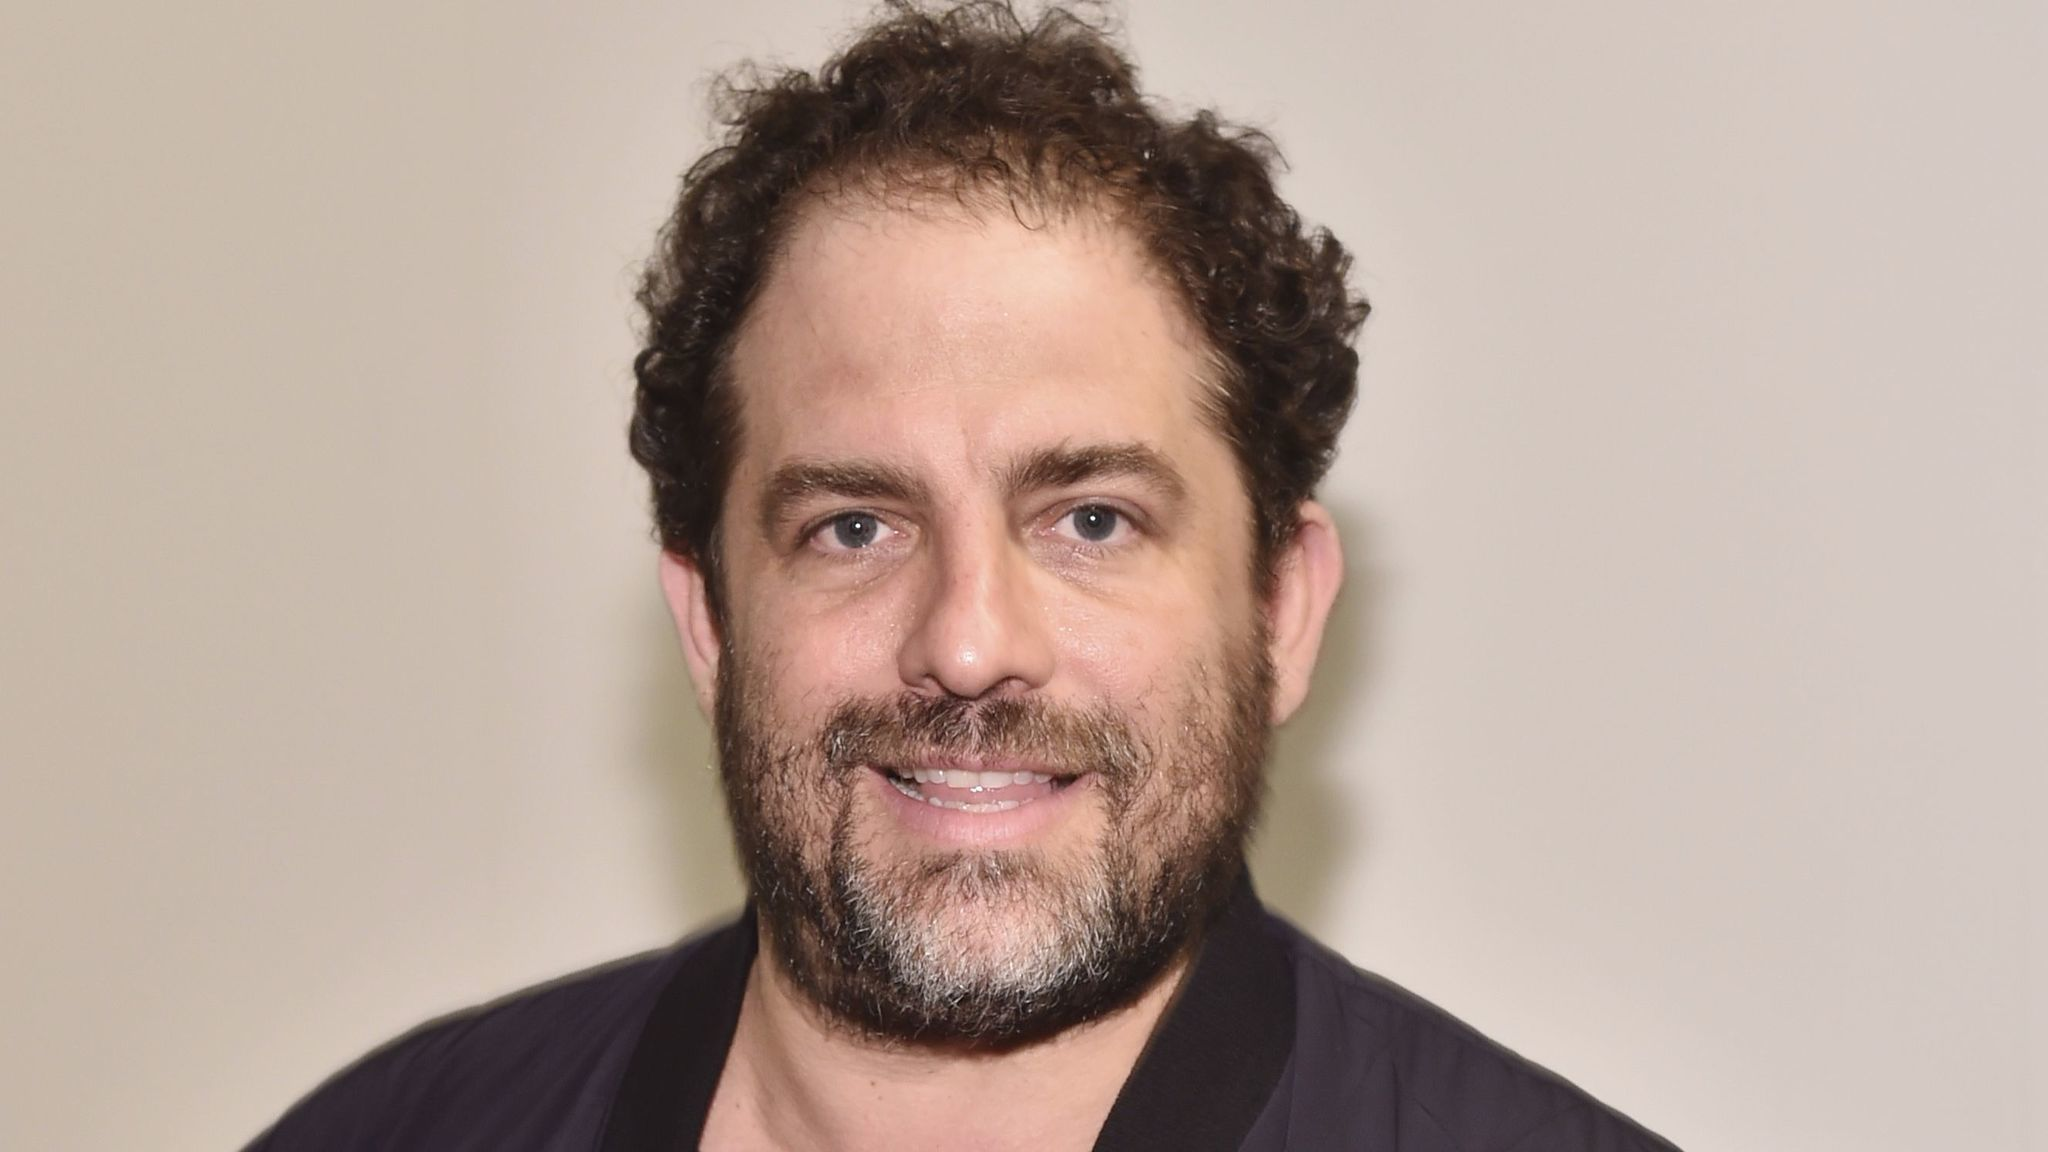 Brett Ratner in 2015. (Mike Coppola / Getty Images)